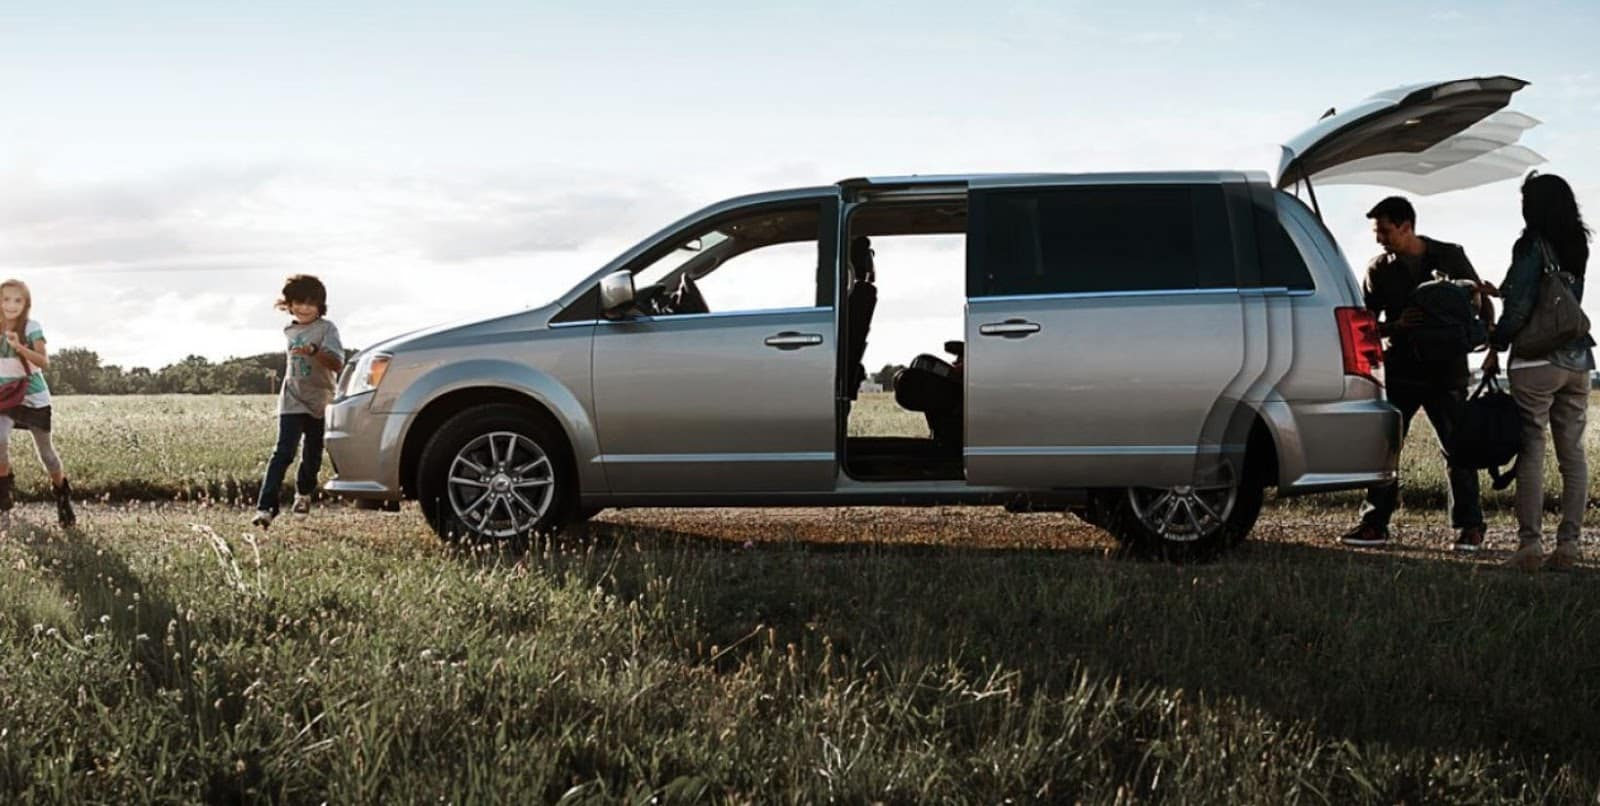 Kids Running in Field with Family around 2019 Silver Dodge Grand Caravan